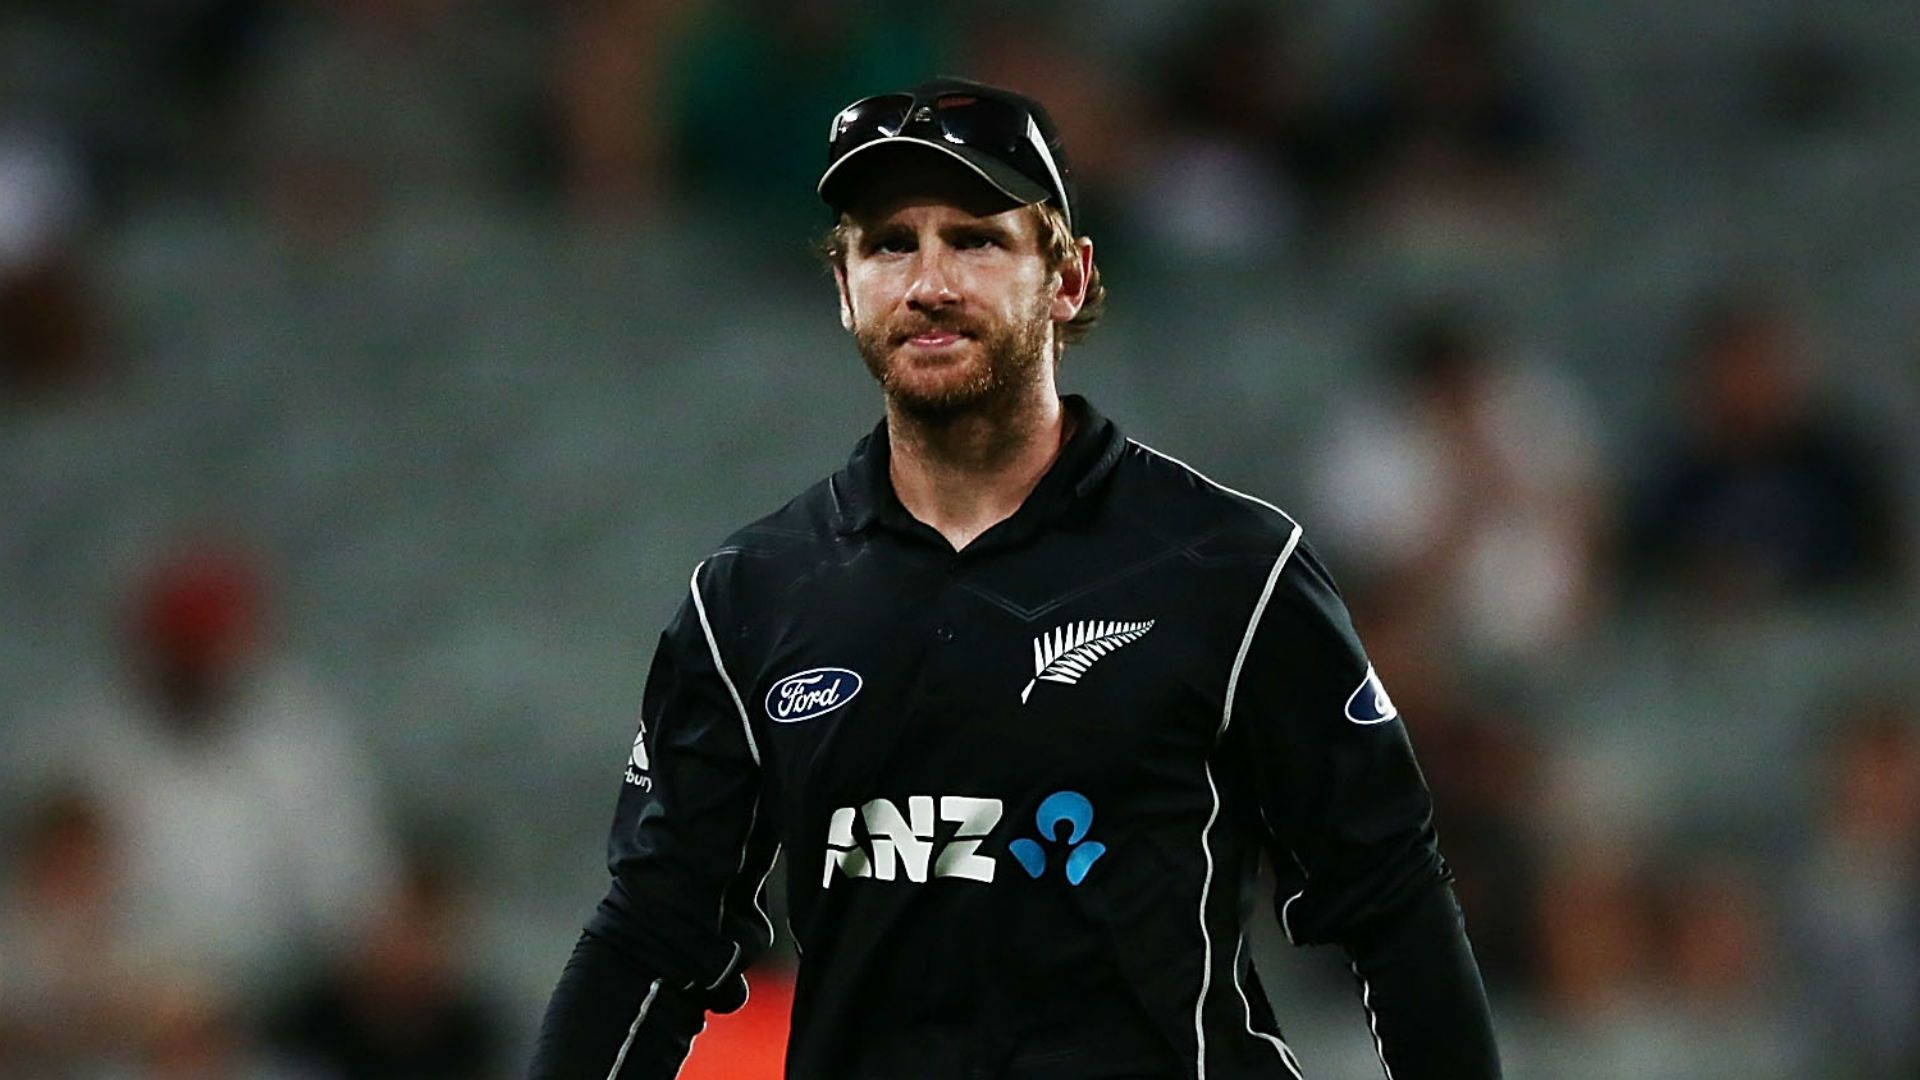 Black Caps skipper rested for West Indies T20s